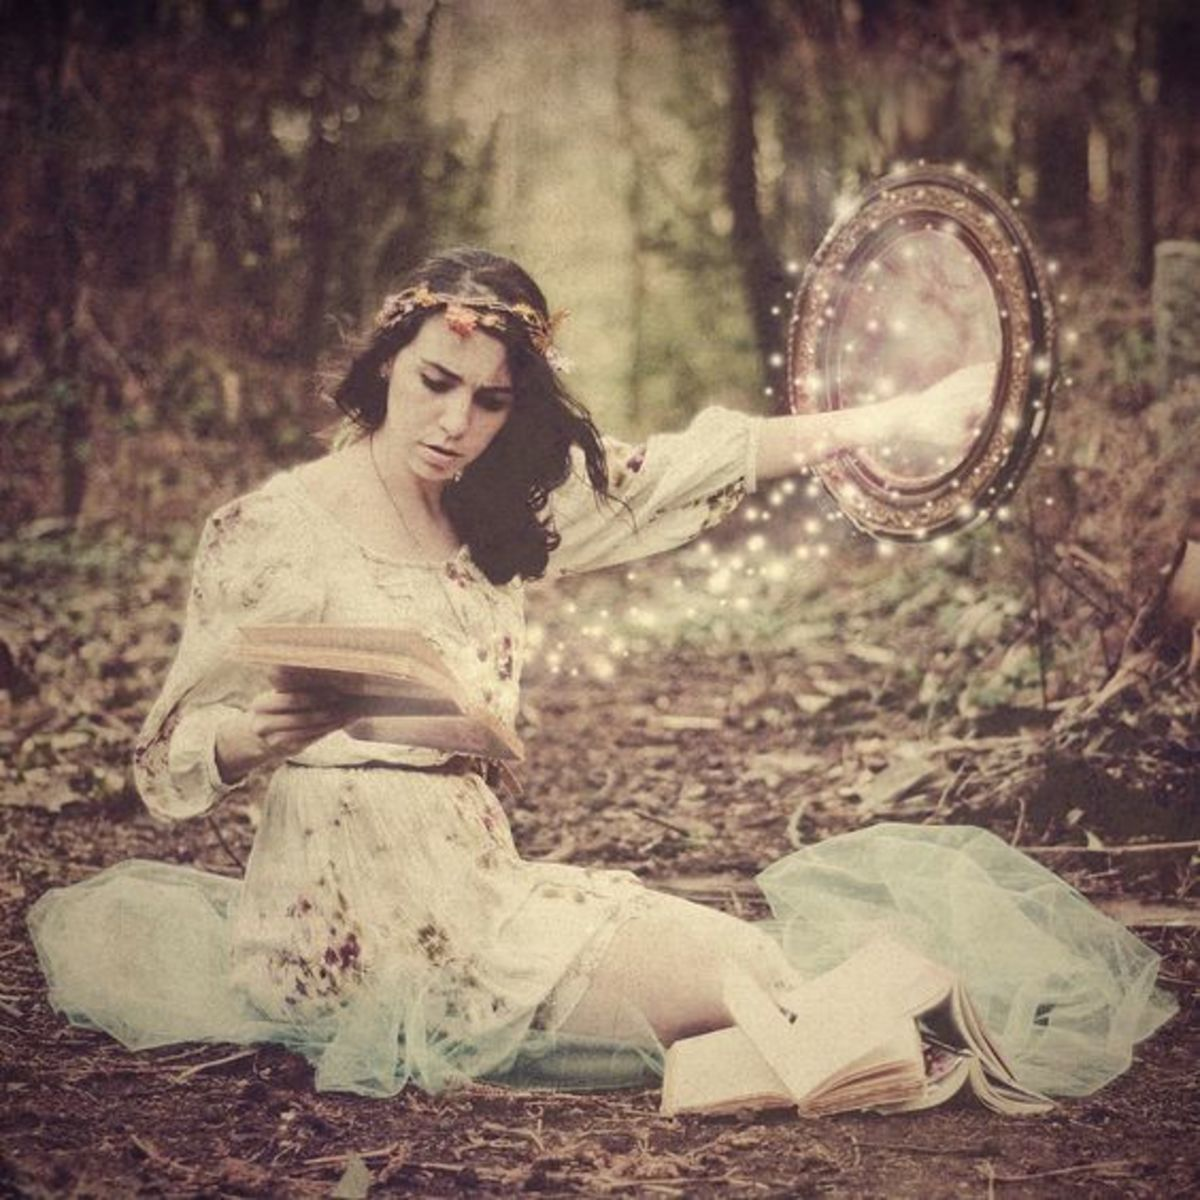 Mirrors can be portals to Faerie